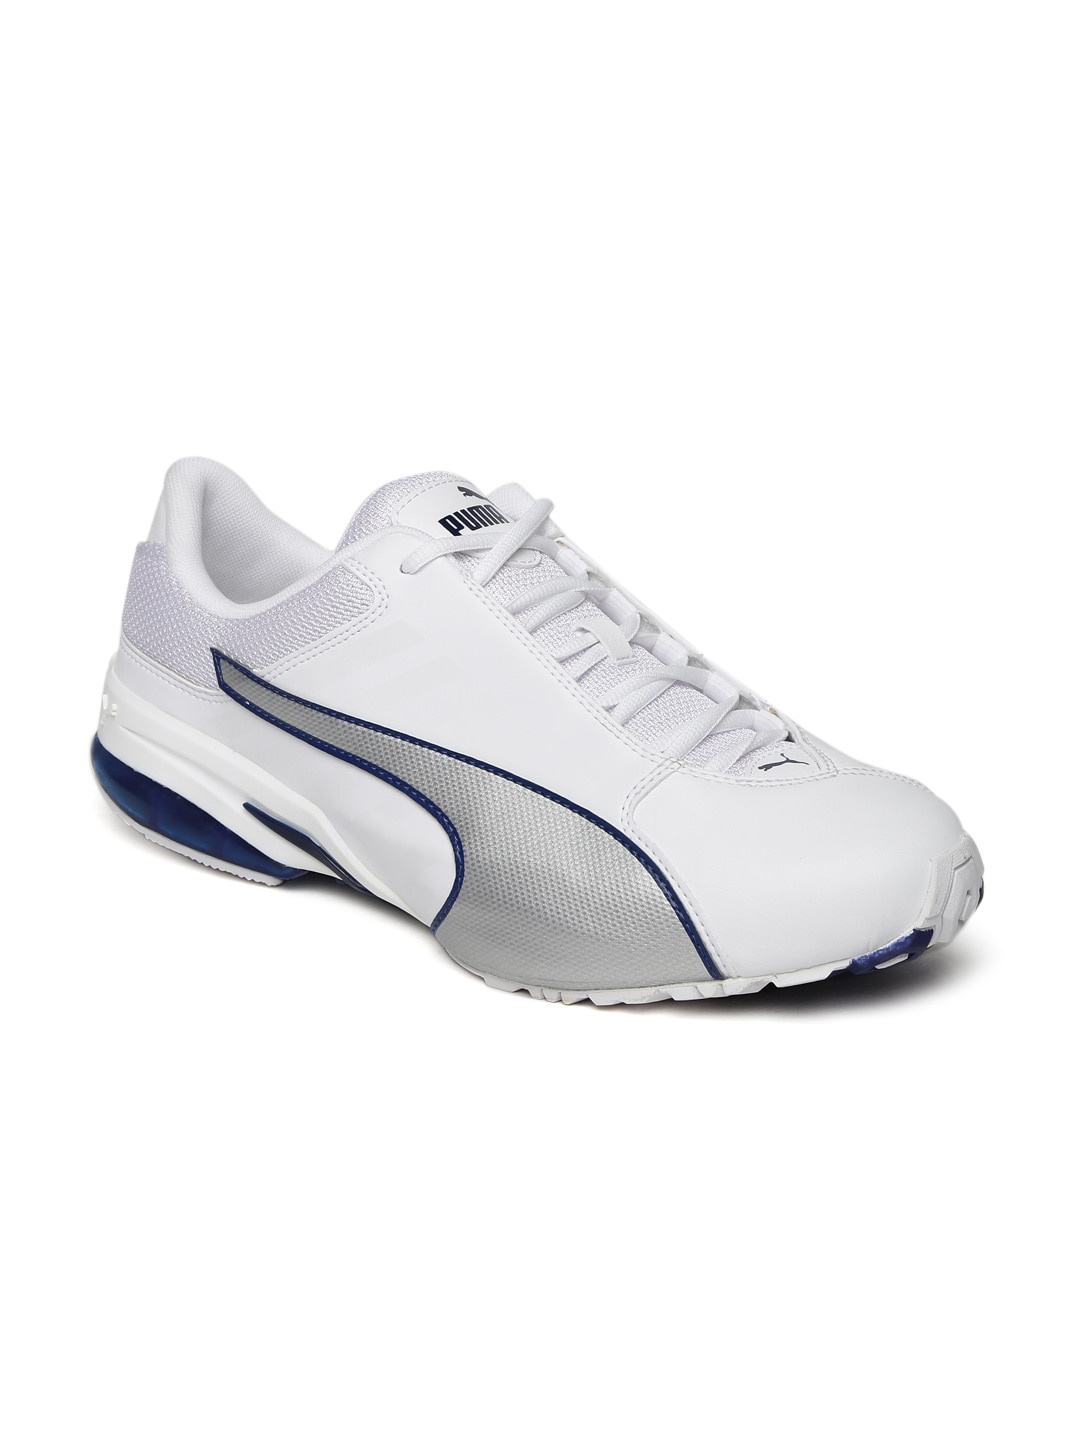 e581a82449f Puma Running Shoes